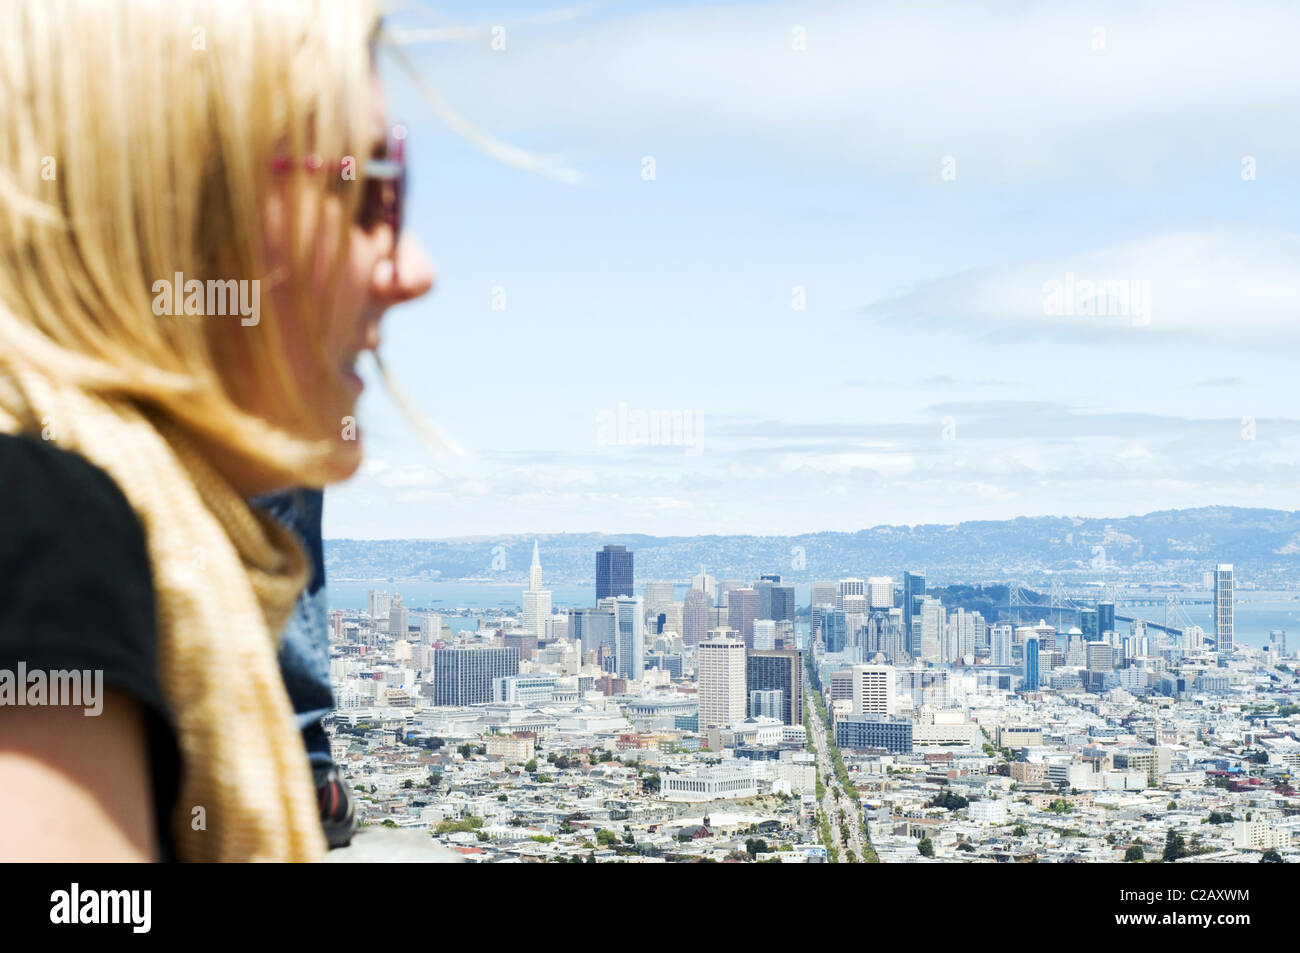 USA, California, San Francisco, tourist looking at city from elevated view Stock Photo